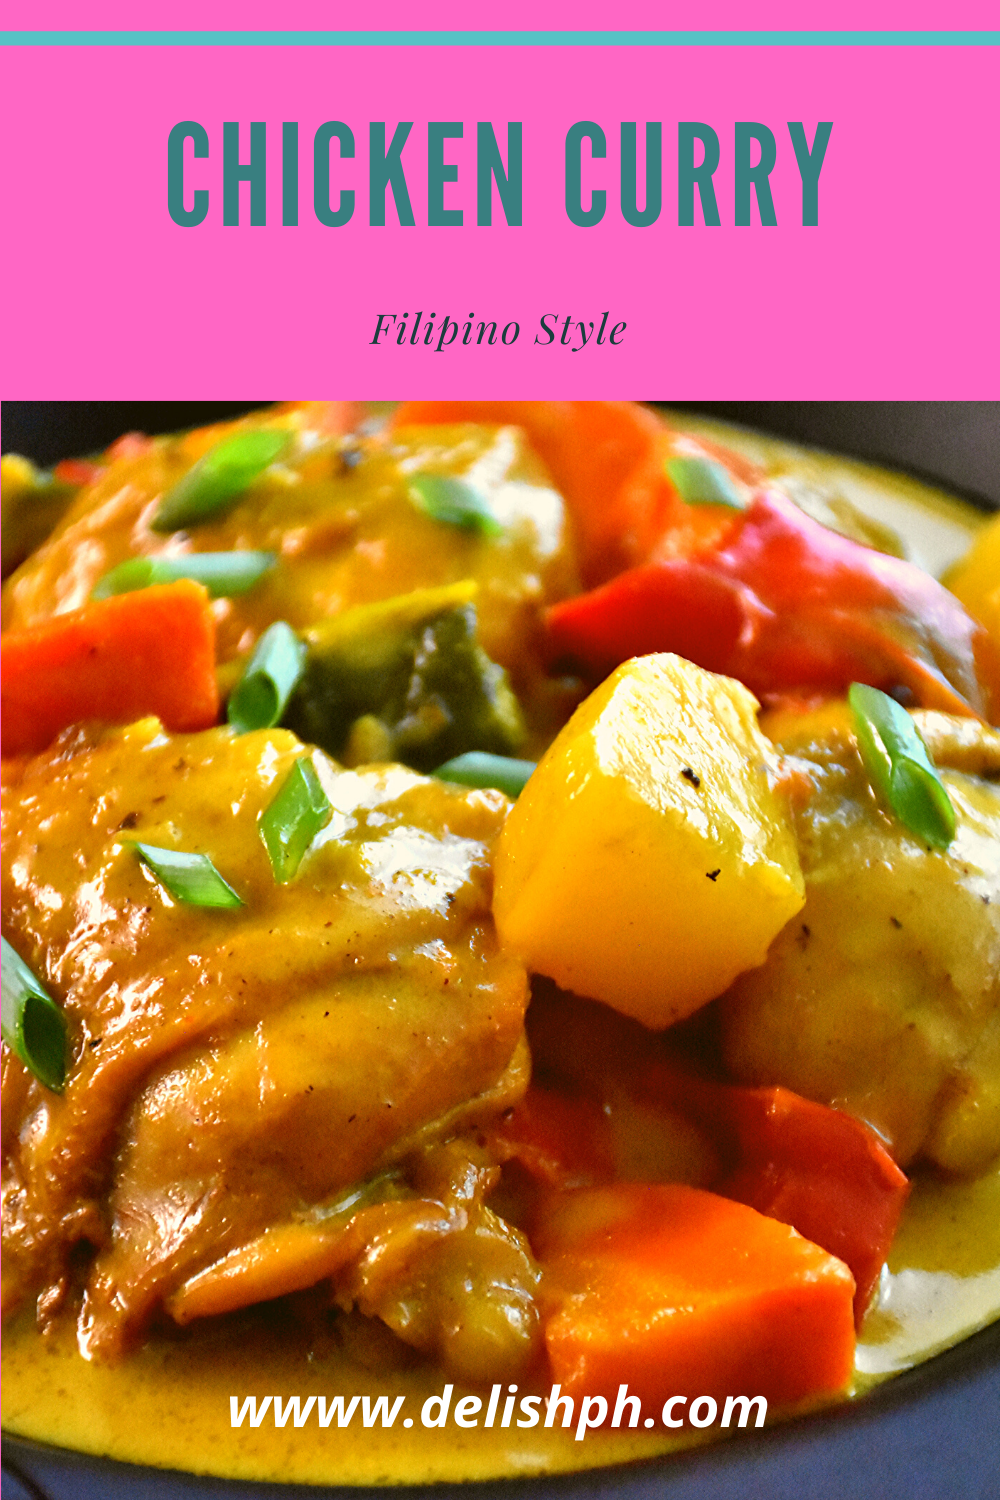 Photo of Chicken Curry (Filipino Style)